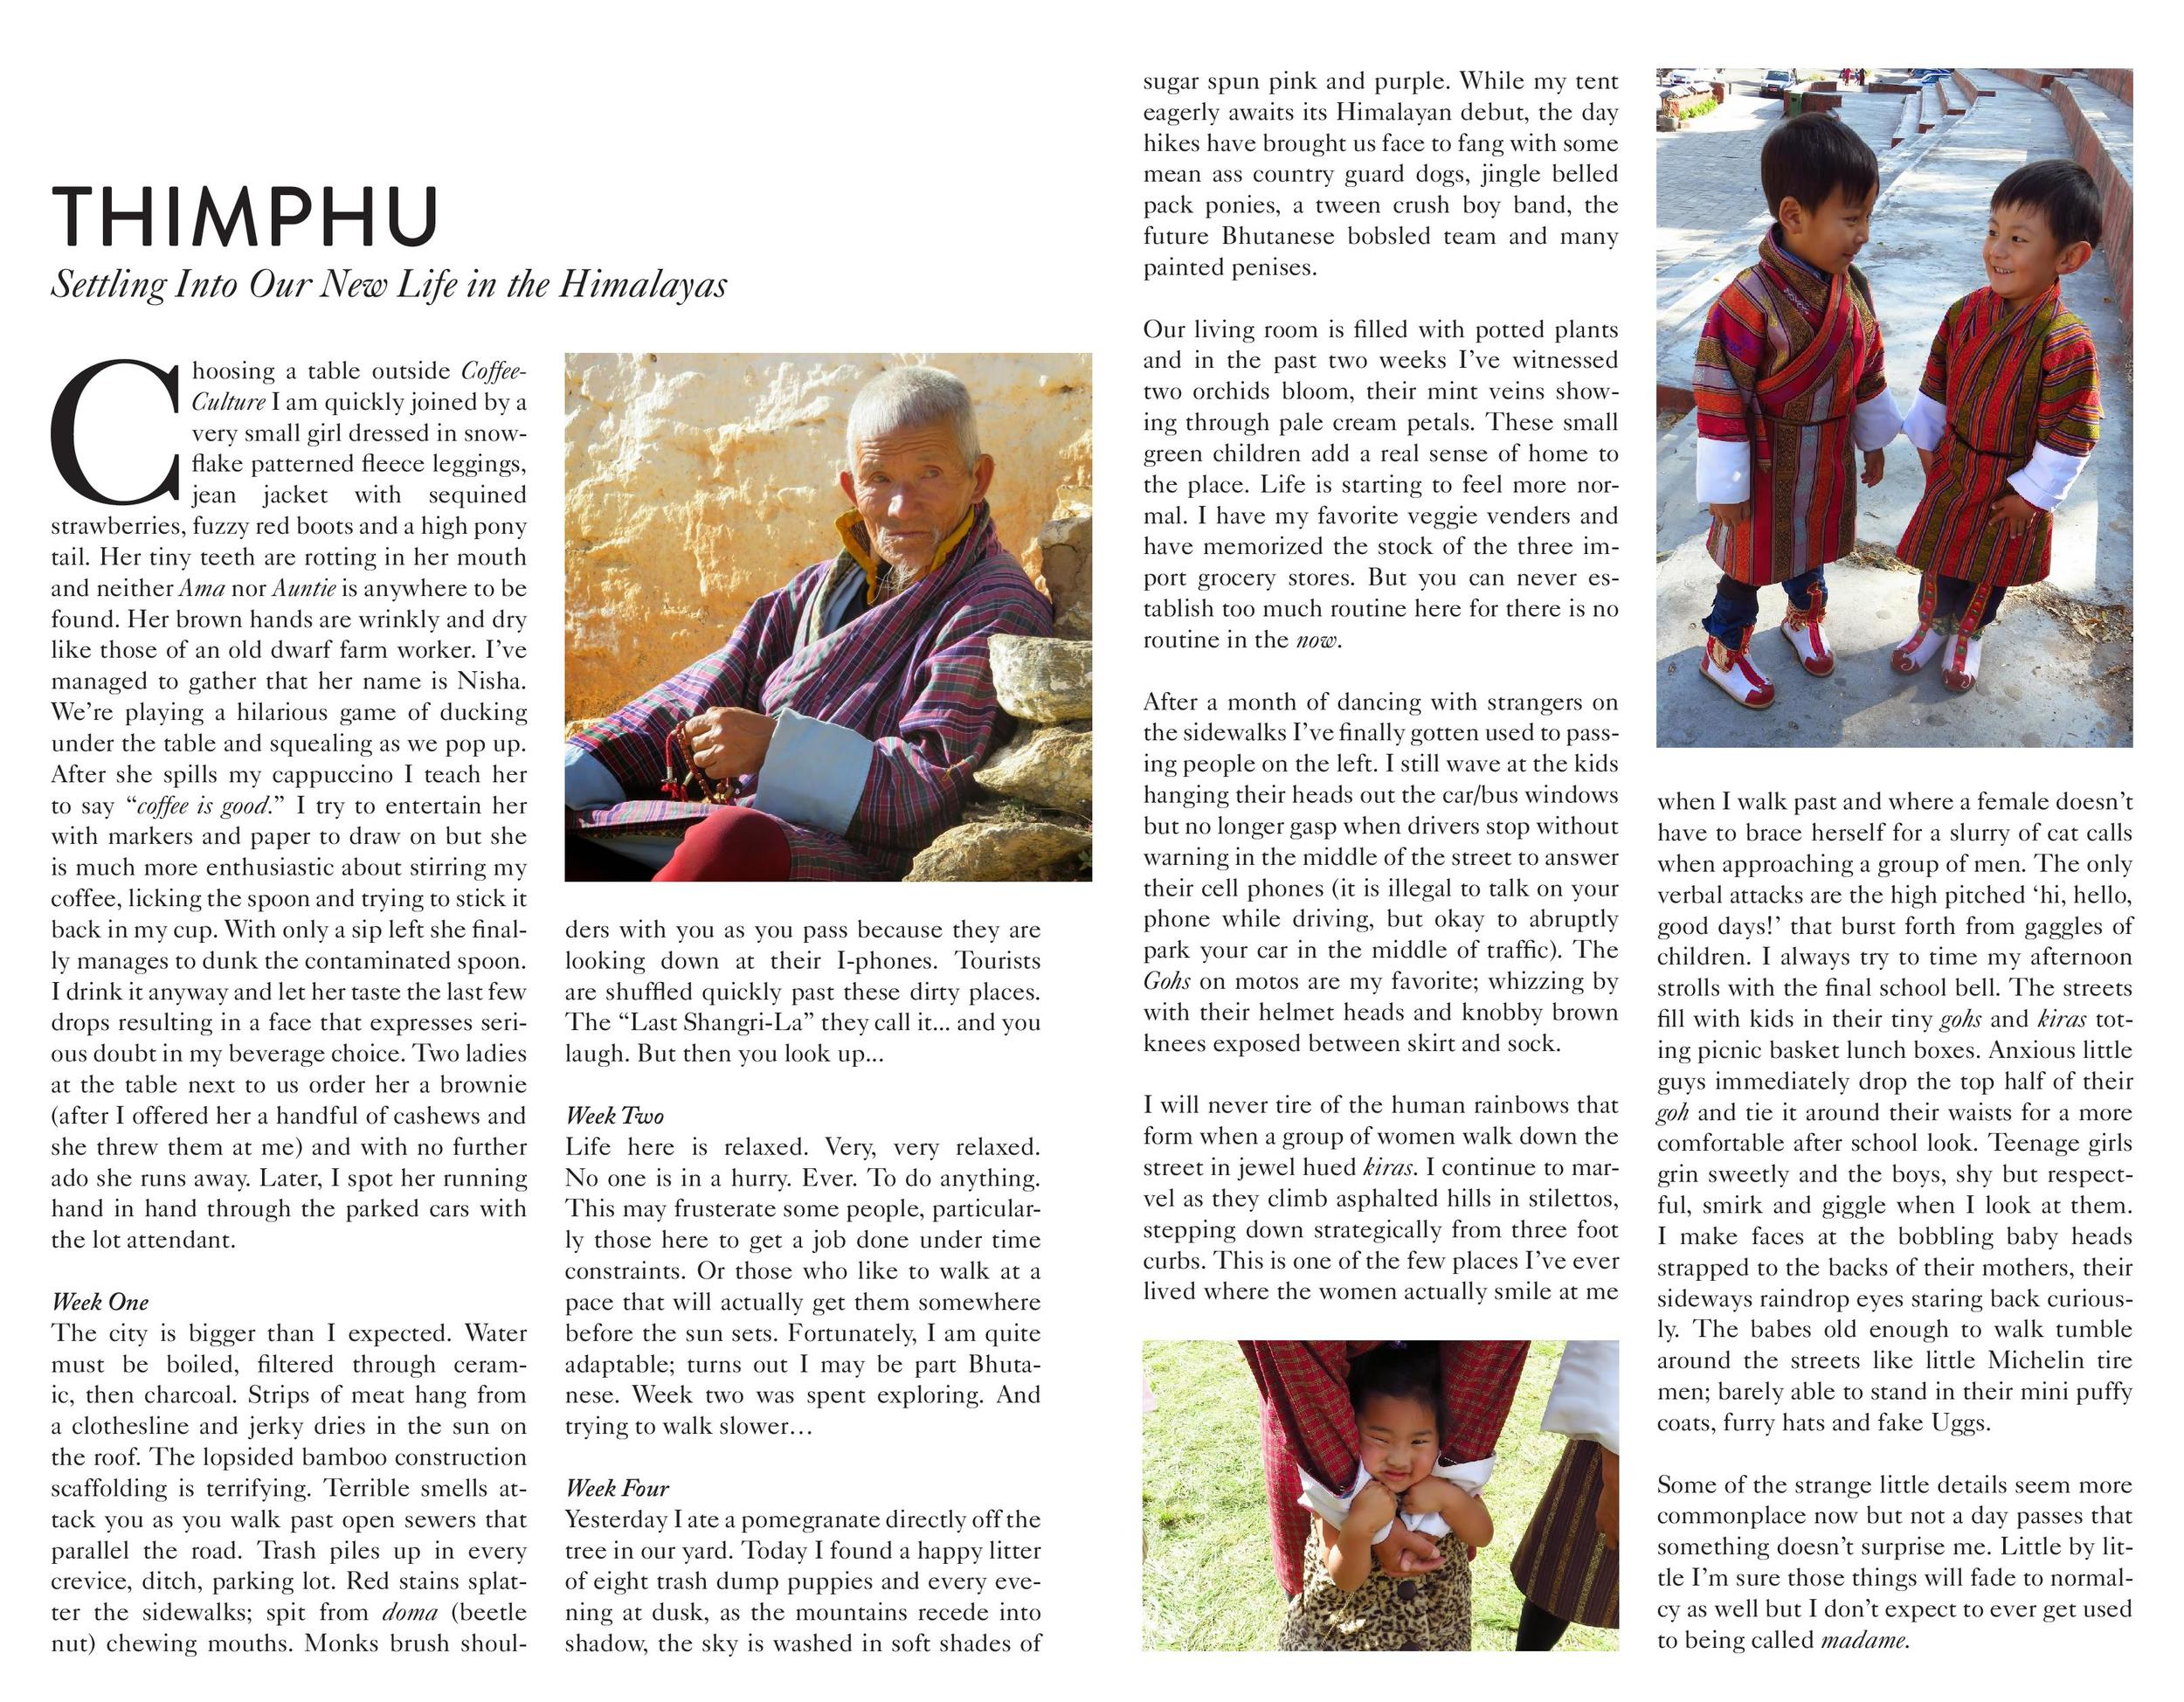 travels_with_a_burro_bhutan_02-page-003.jpg